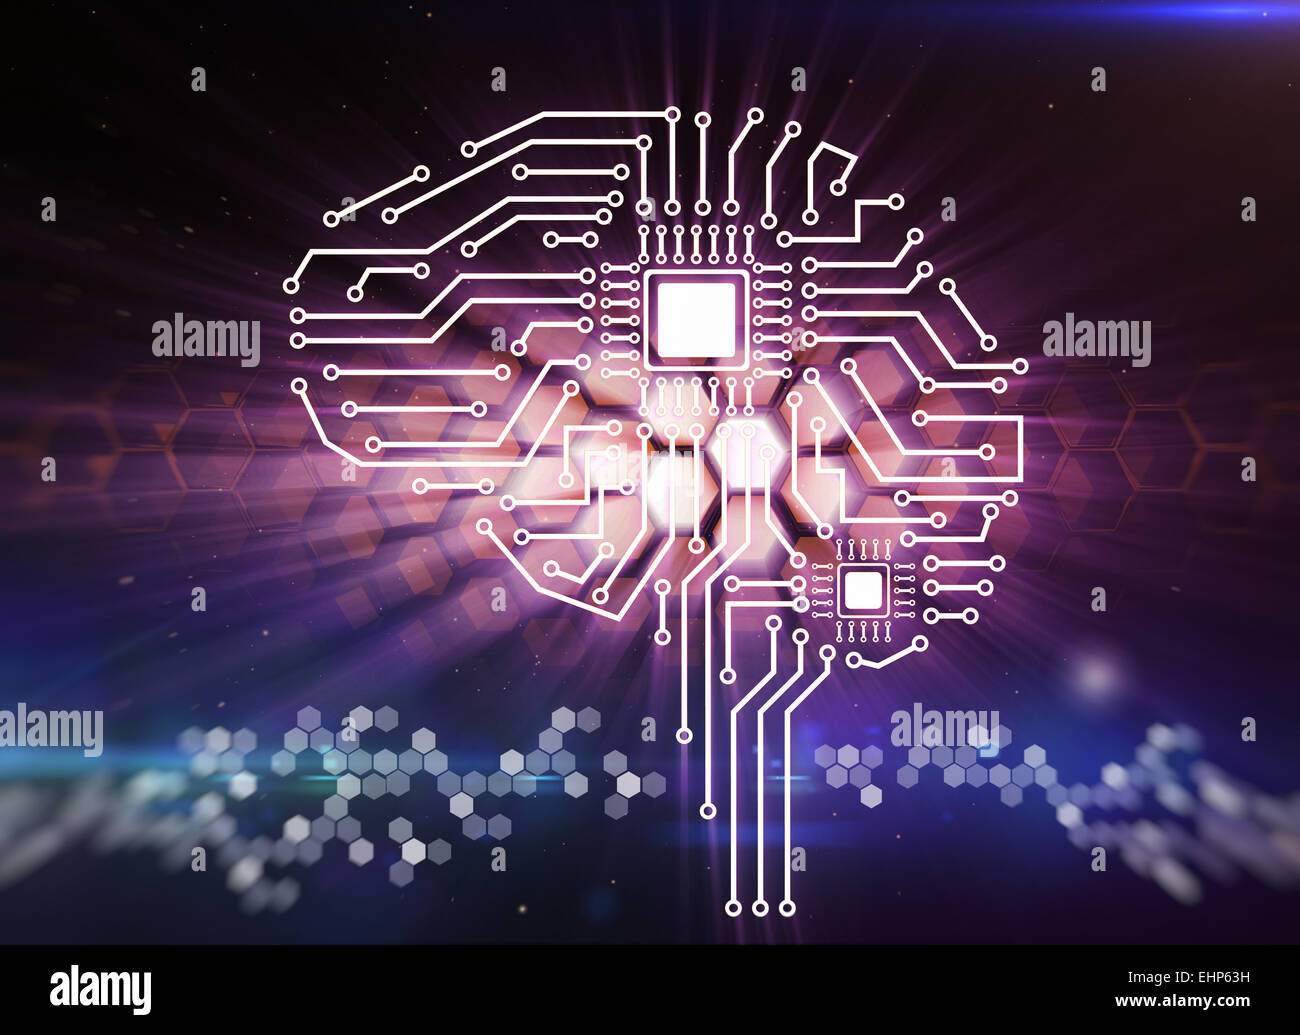 Computer circuit board in the form of the human brain - Stock Image